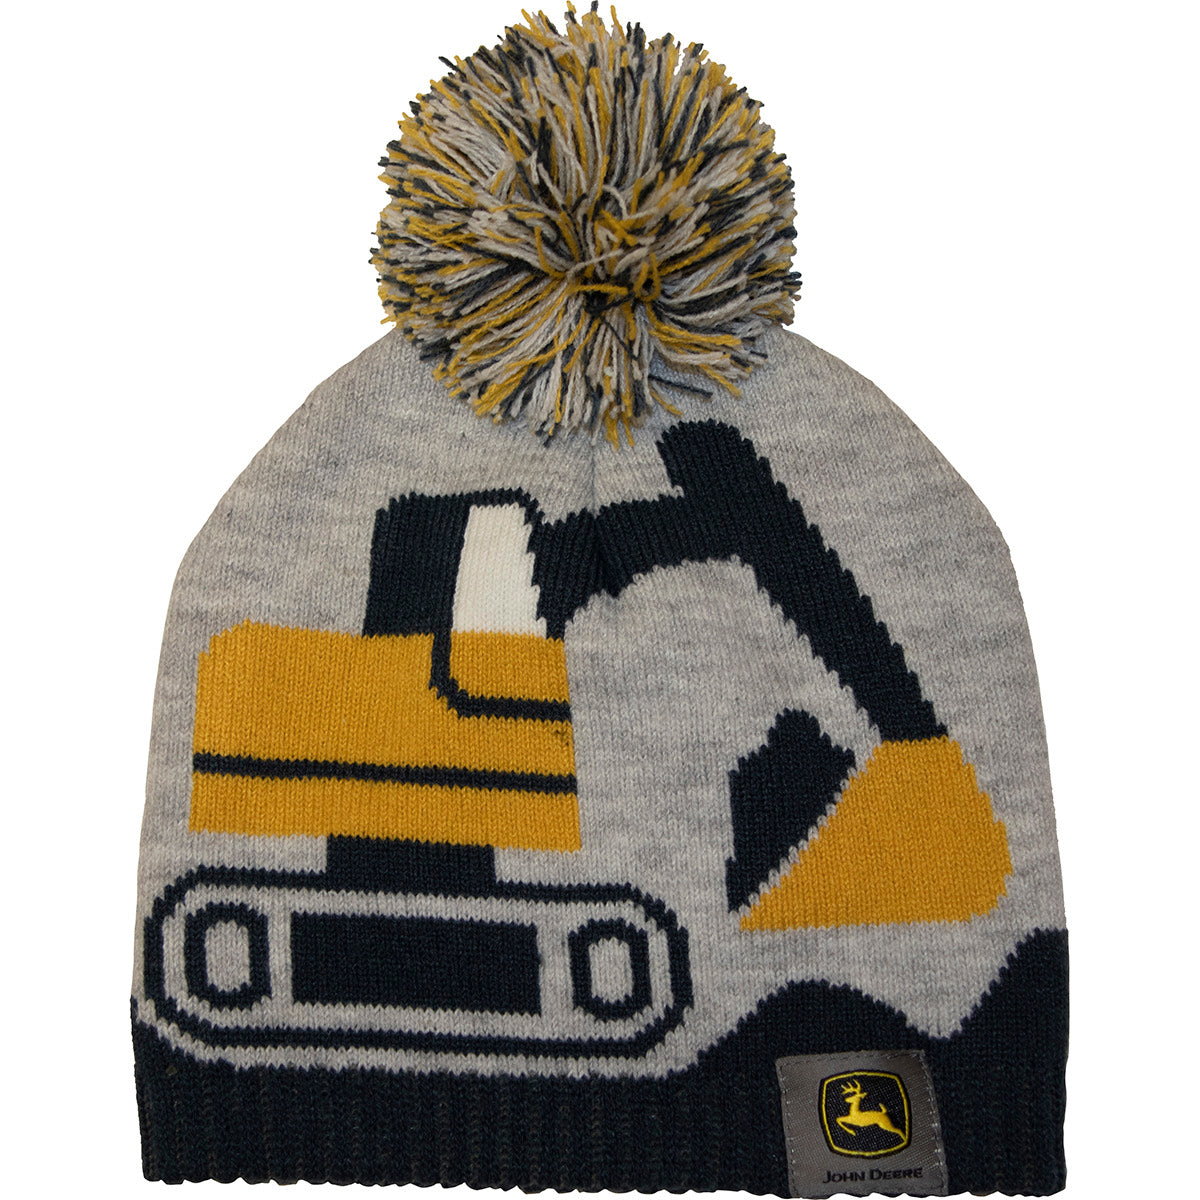 John Deere Boys Toddler Construction Beanie/Cap - LP70914